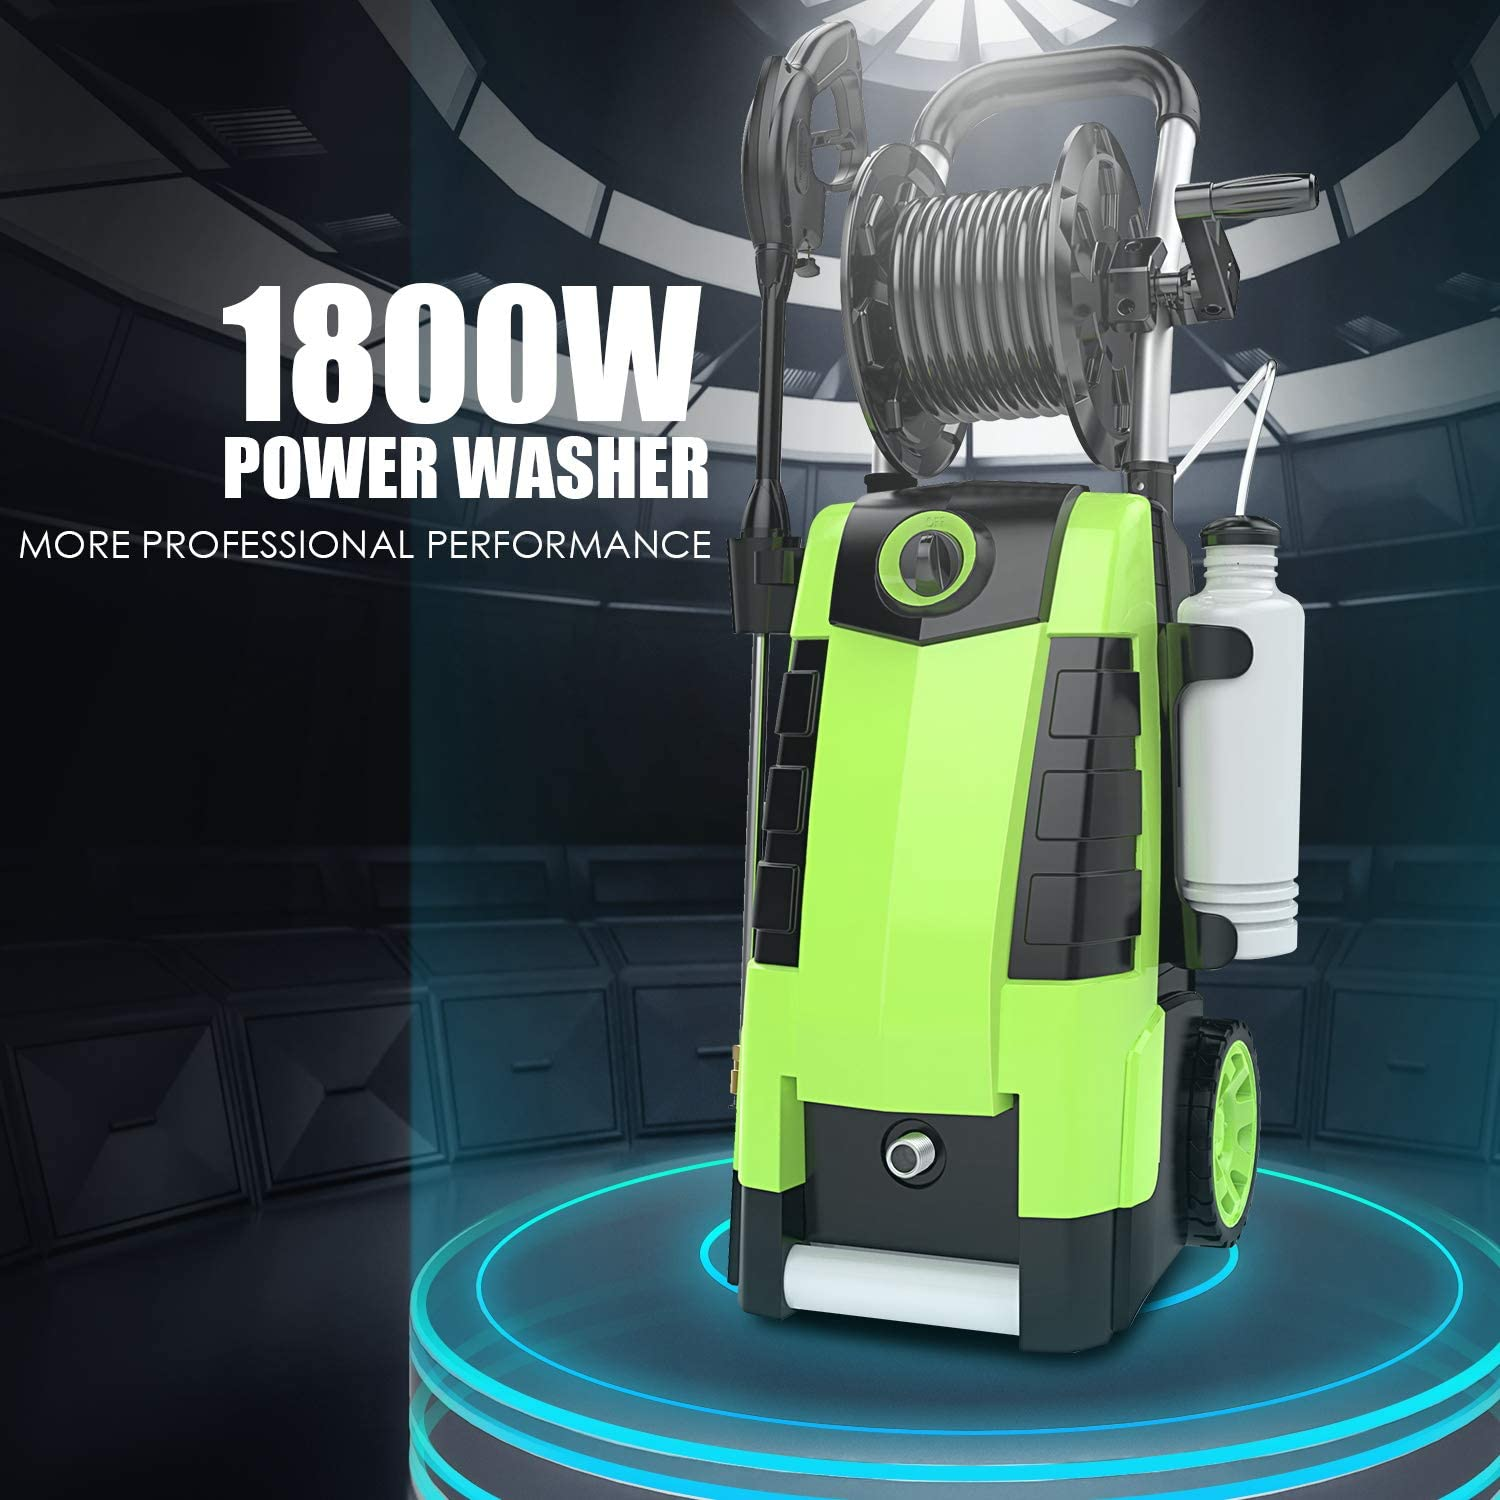 TEANDE 3800PSI Electric Pressure Washer, 2.8GPM High Pressure Power Washer 1800W Machine for Cars Fences Patios Garden Cleaning Hose Reel : Garden & Outdoor